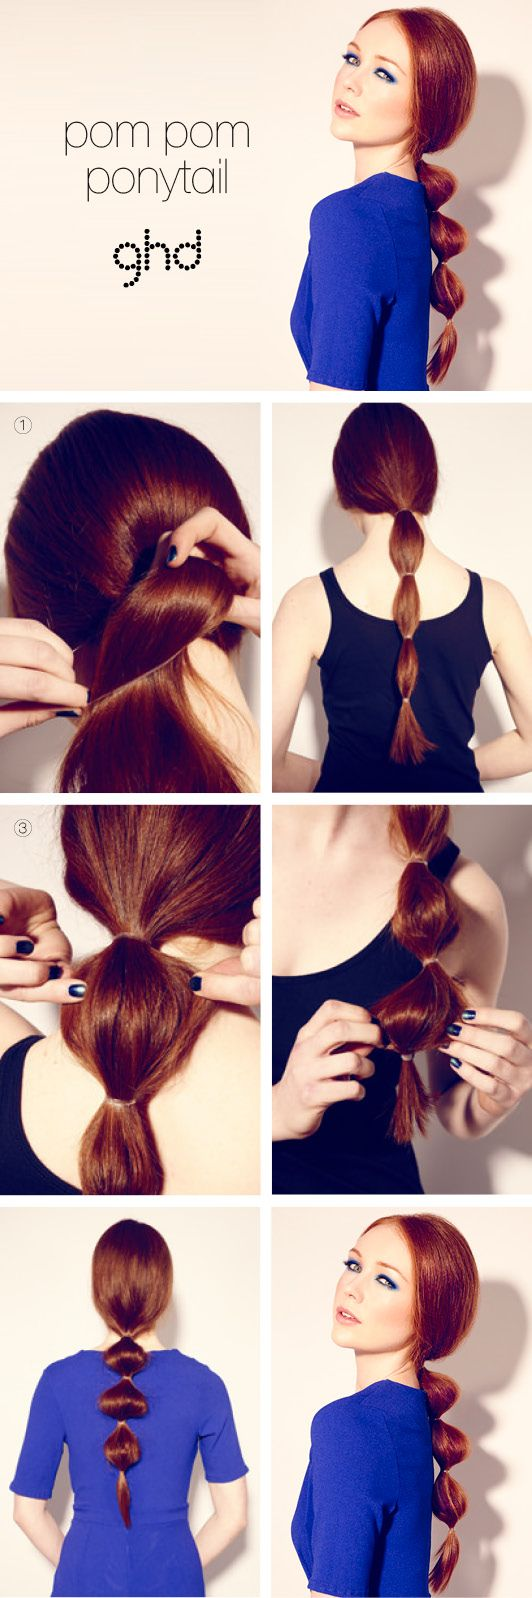 HOW-TO HAIRSTYLES: POM POM PONYTAIL Make your ponytail POP! Give your HAIR a HIGH-FASHION twist with this simple hairstyle